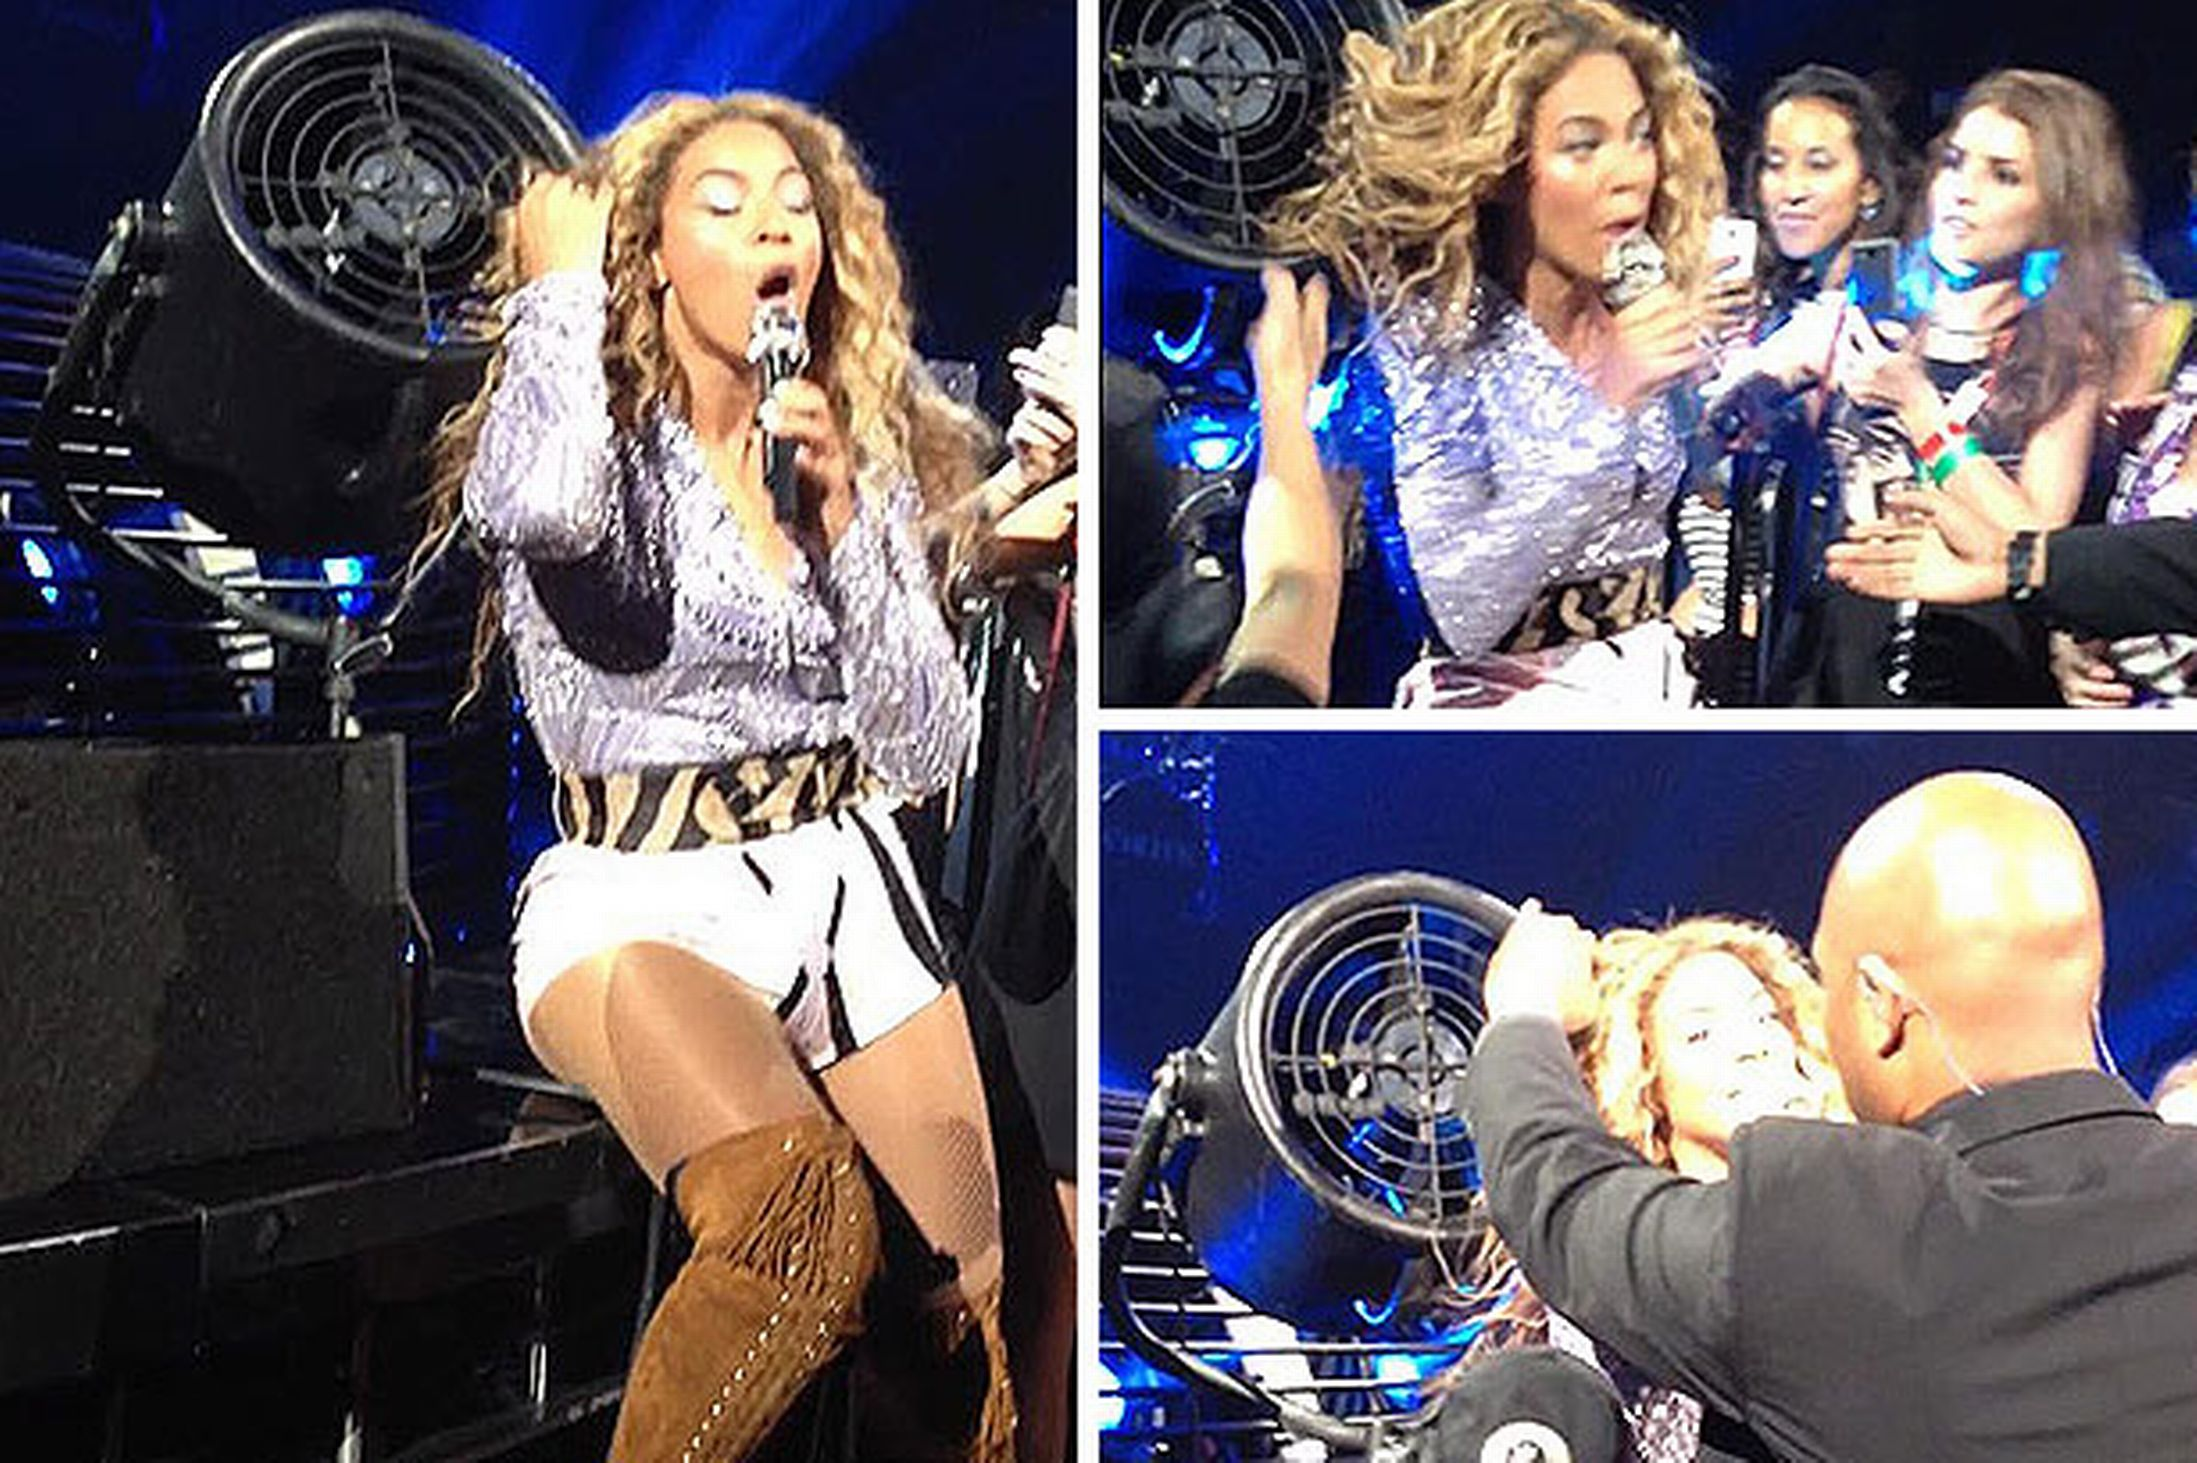 Watch Beyoncé Win A Hair Yanking Fight With A Fan